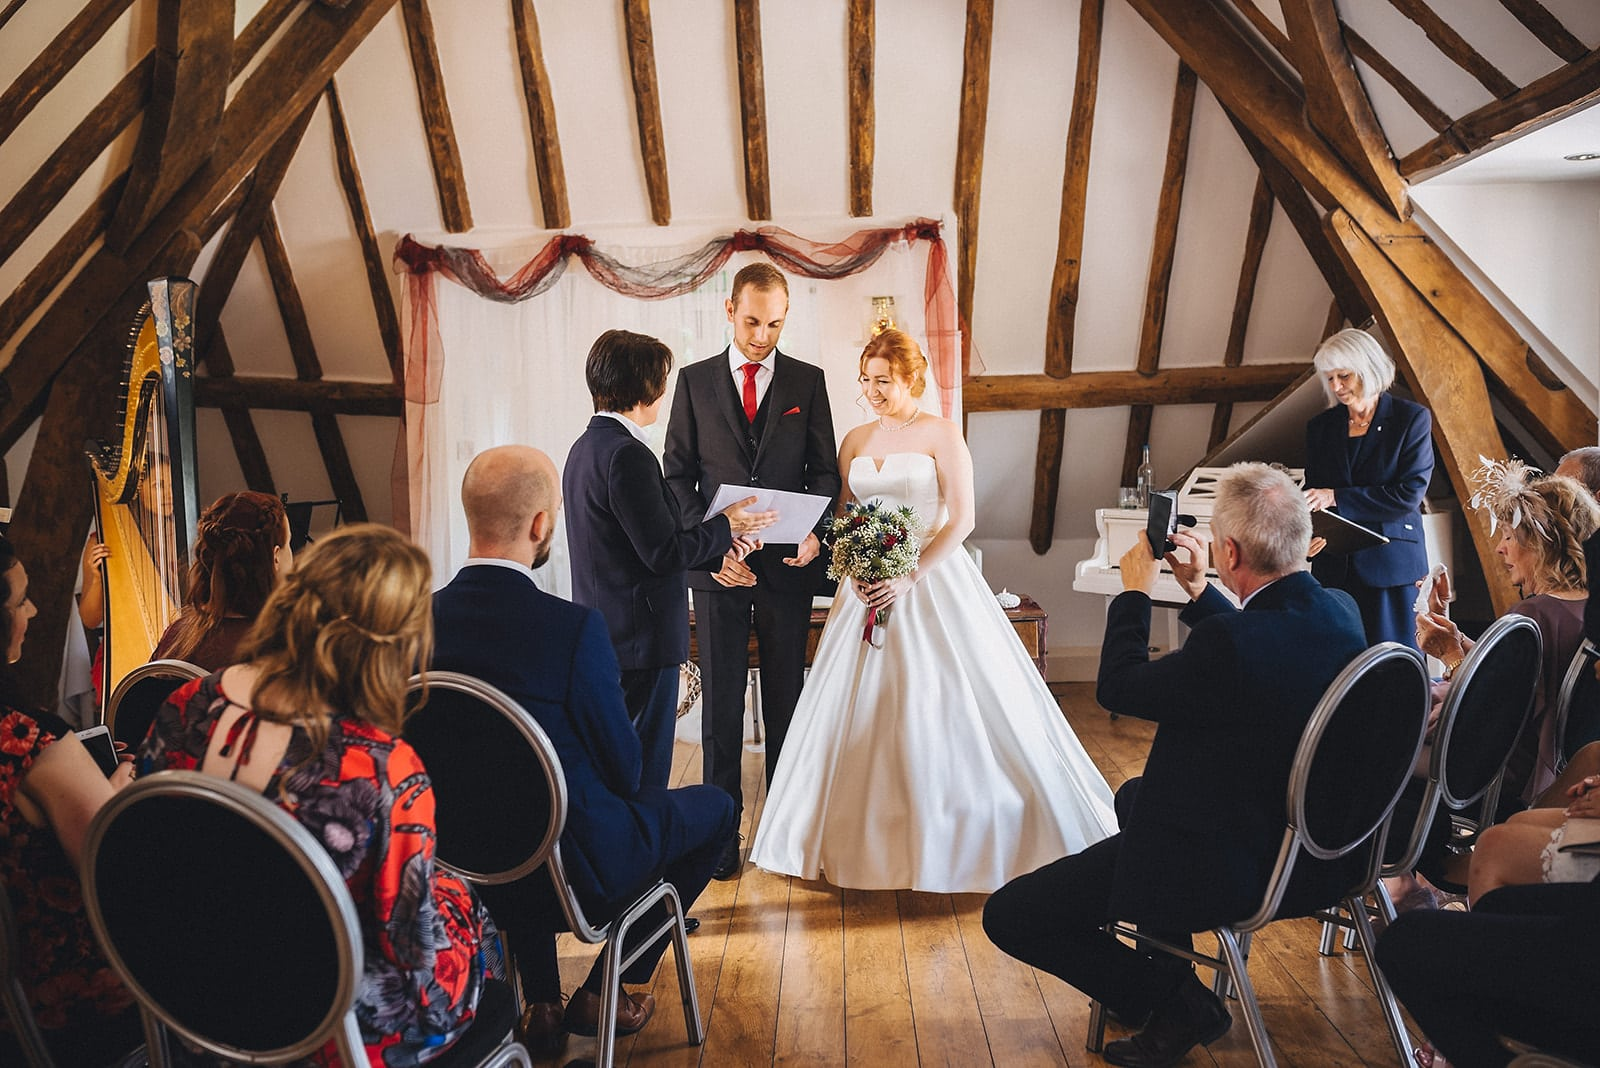 Registrar hands the bride and groom their marriage certificate at The Hever Hotel